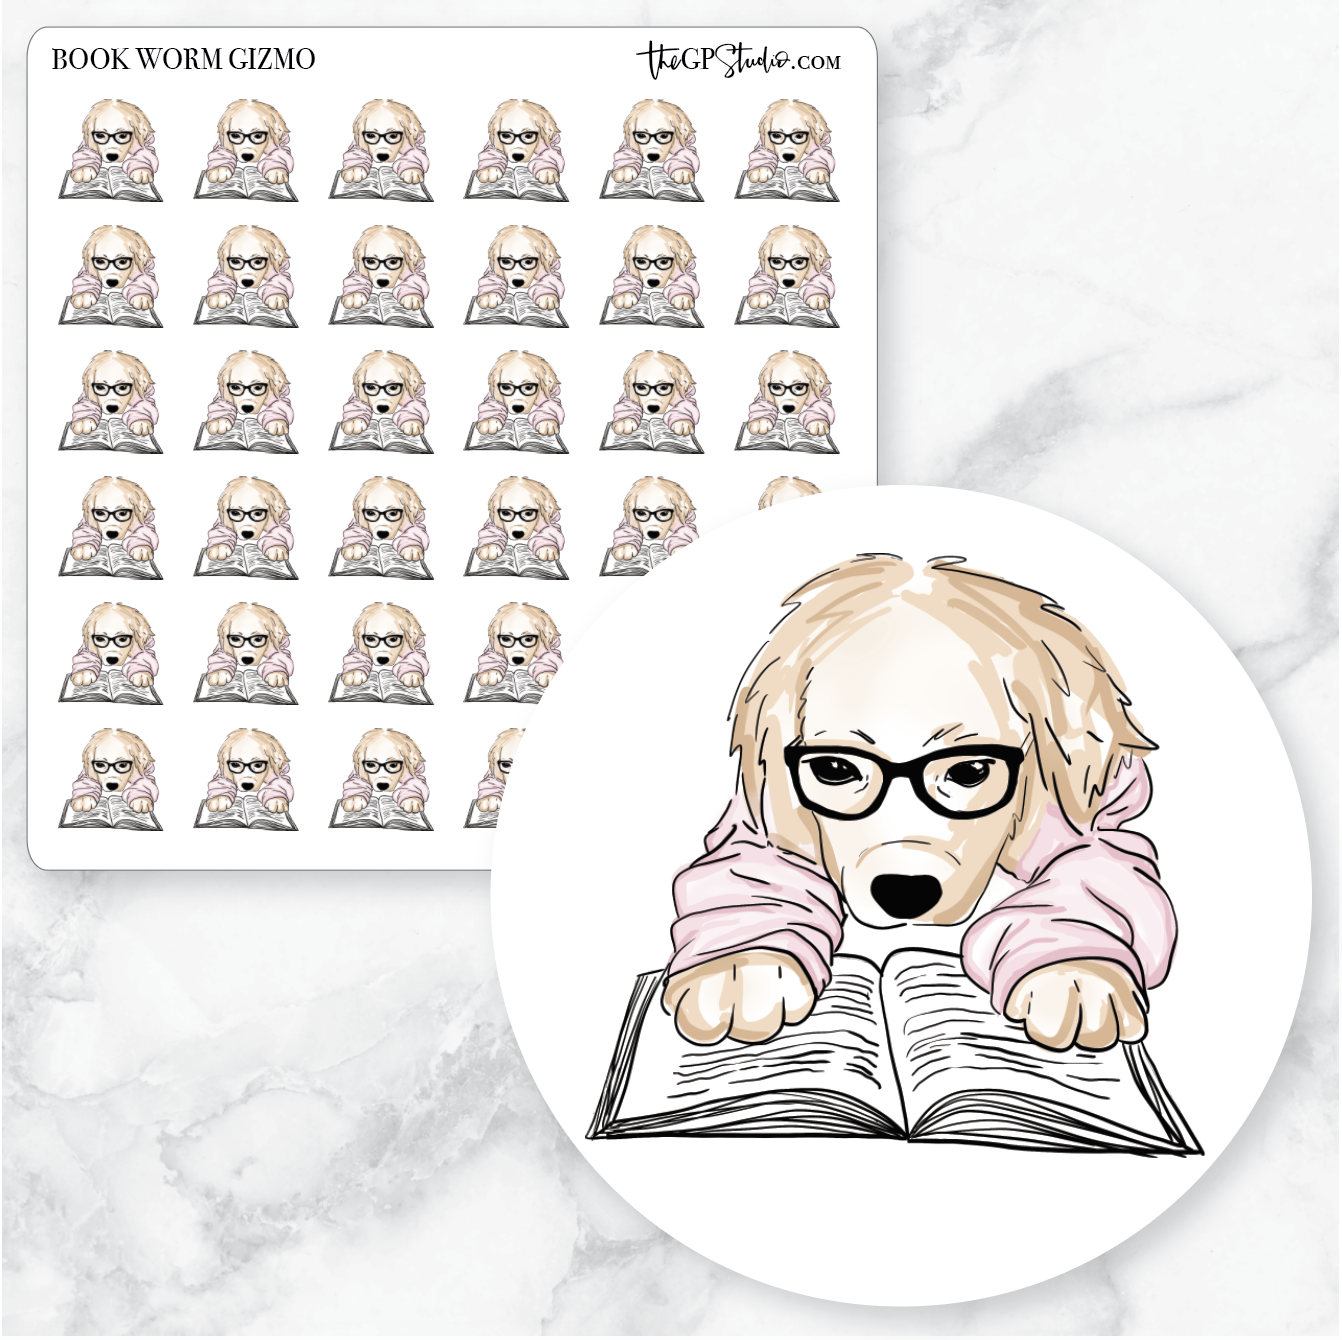 BOOK WORM GIZMO Planner Stickers-The GP Studio